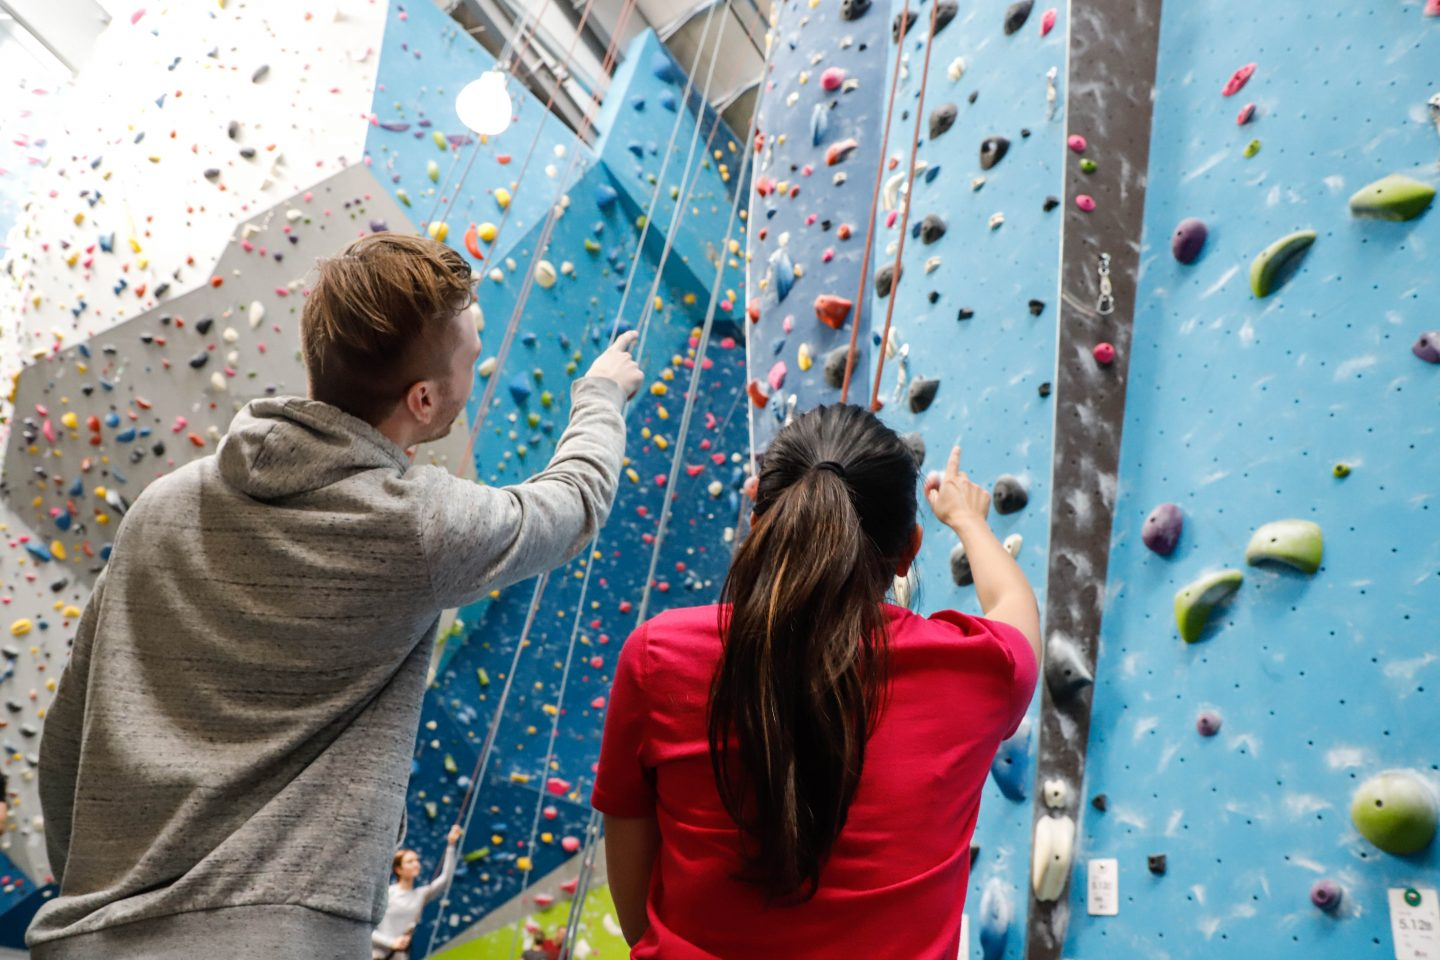 Two climbing partners look up to an indoor climbing wall and discussing the climbing route. challenge, overcoming fears, self-reflection, self-improvement, trust, leadership skills, GamePlan A